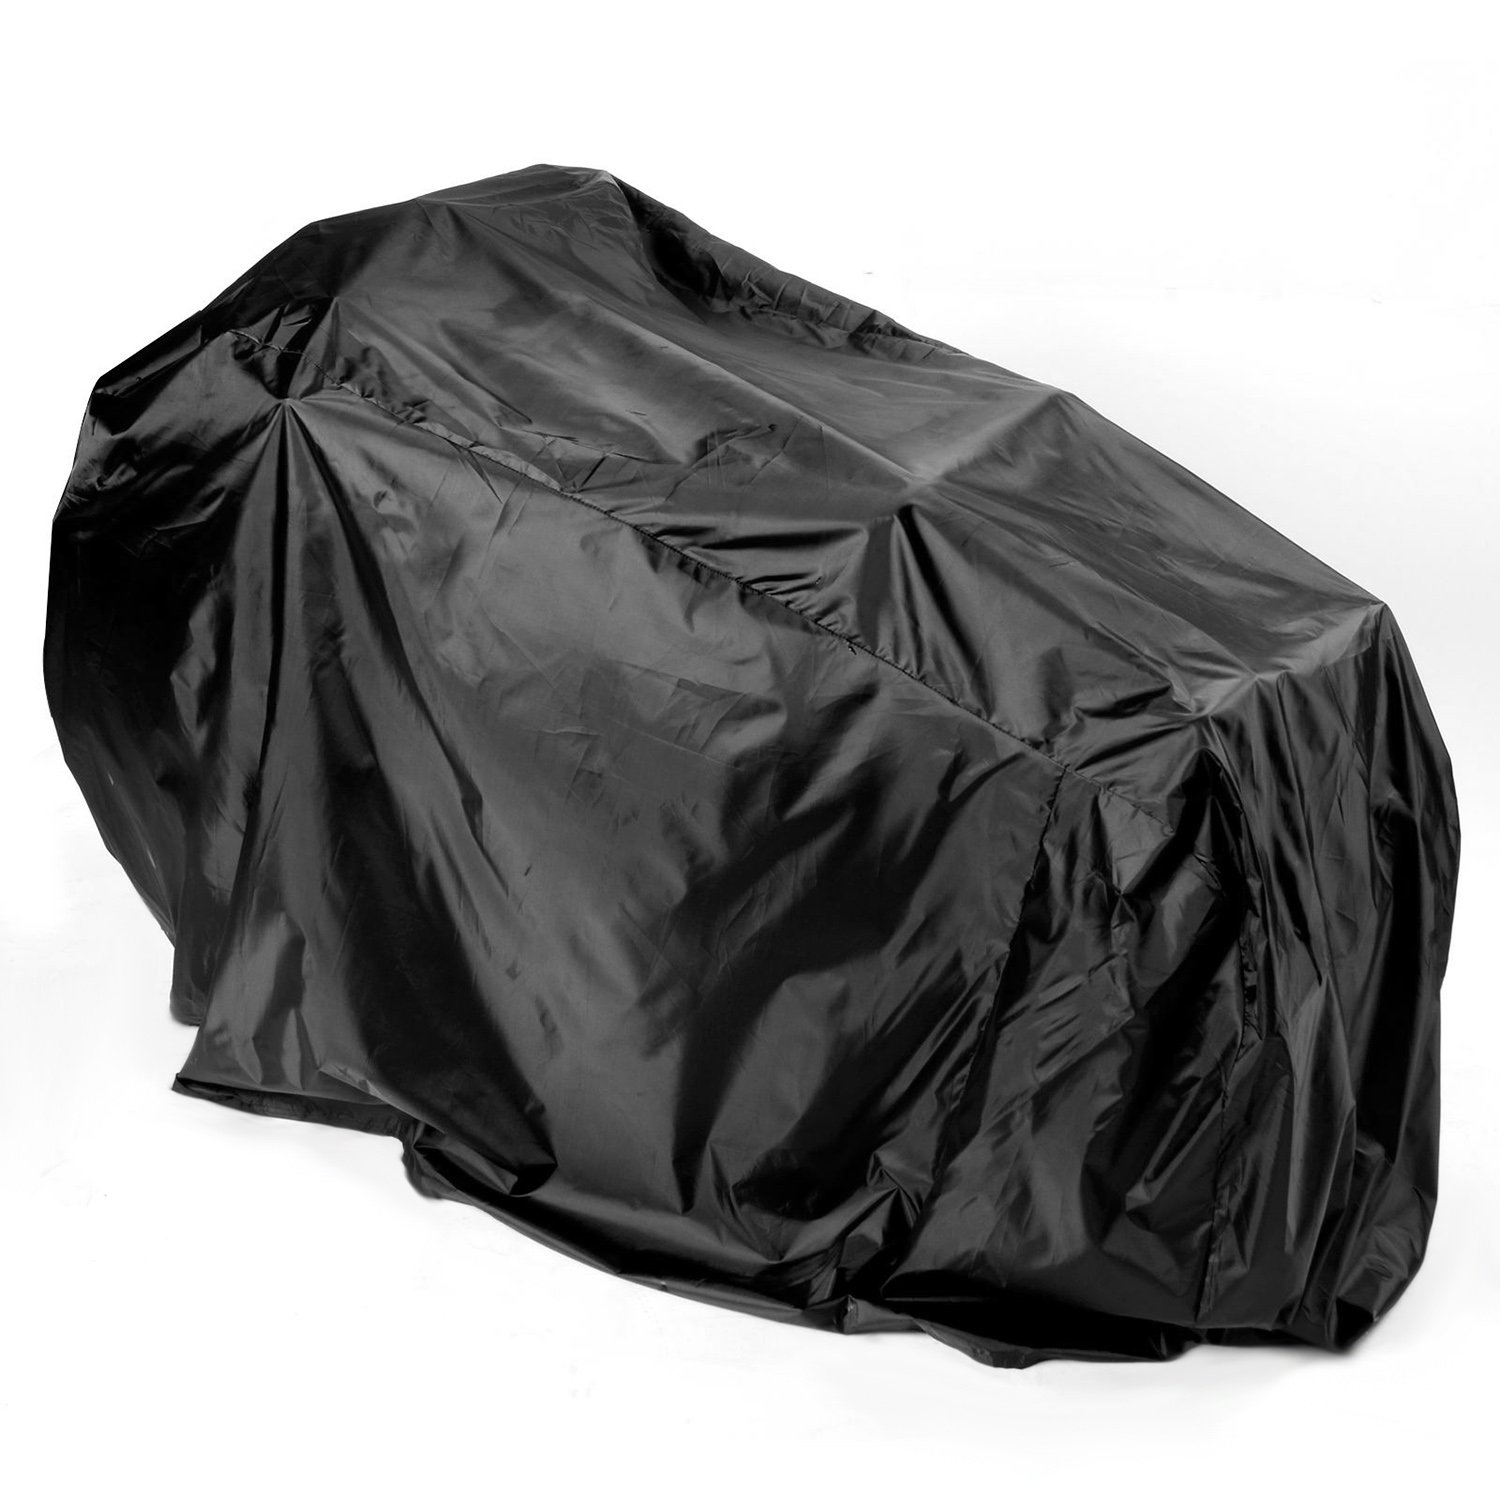 SAVFY Bike Cover for 2-Bike